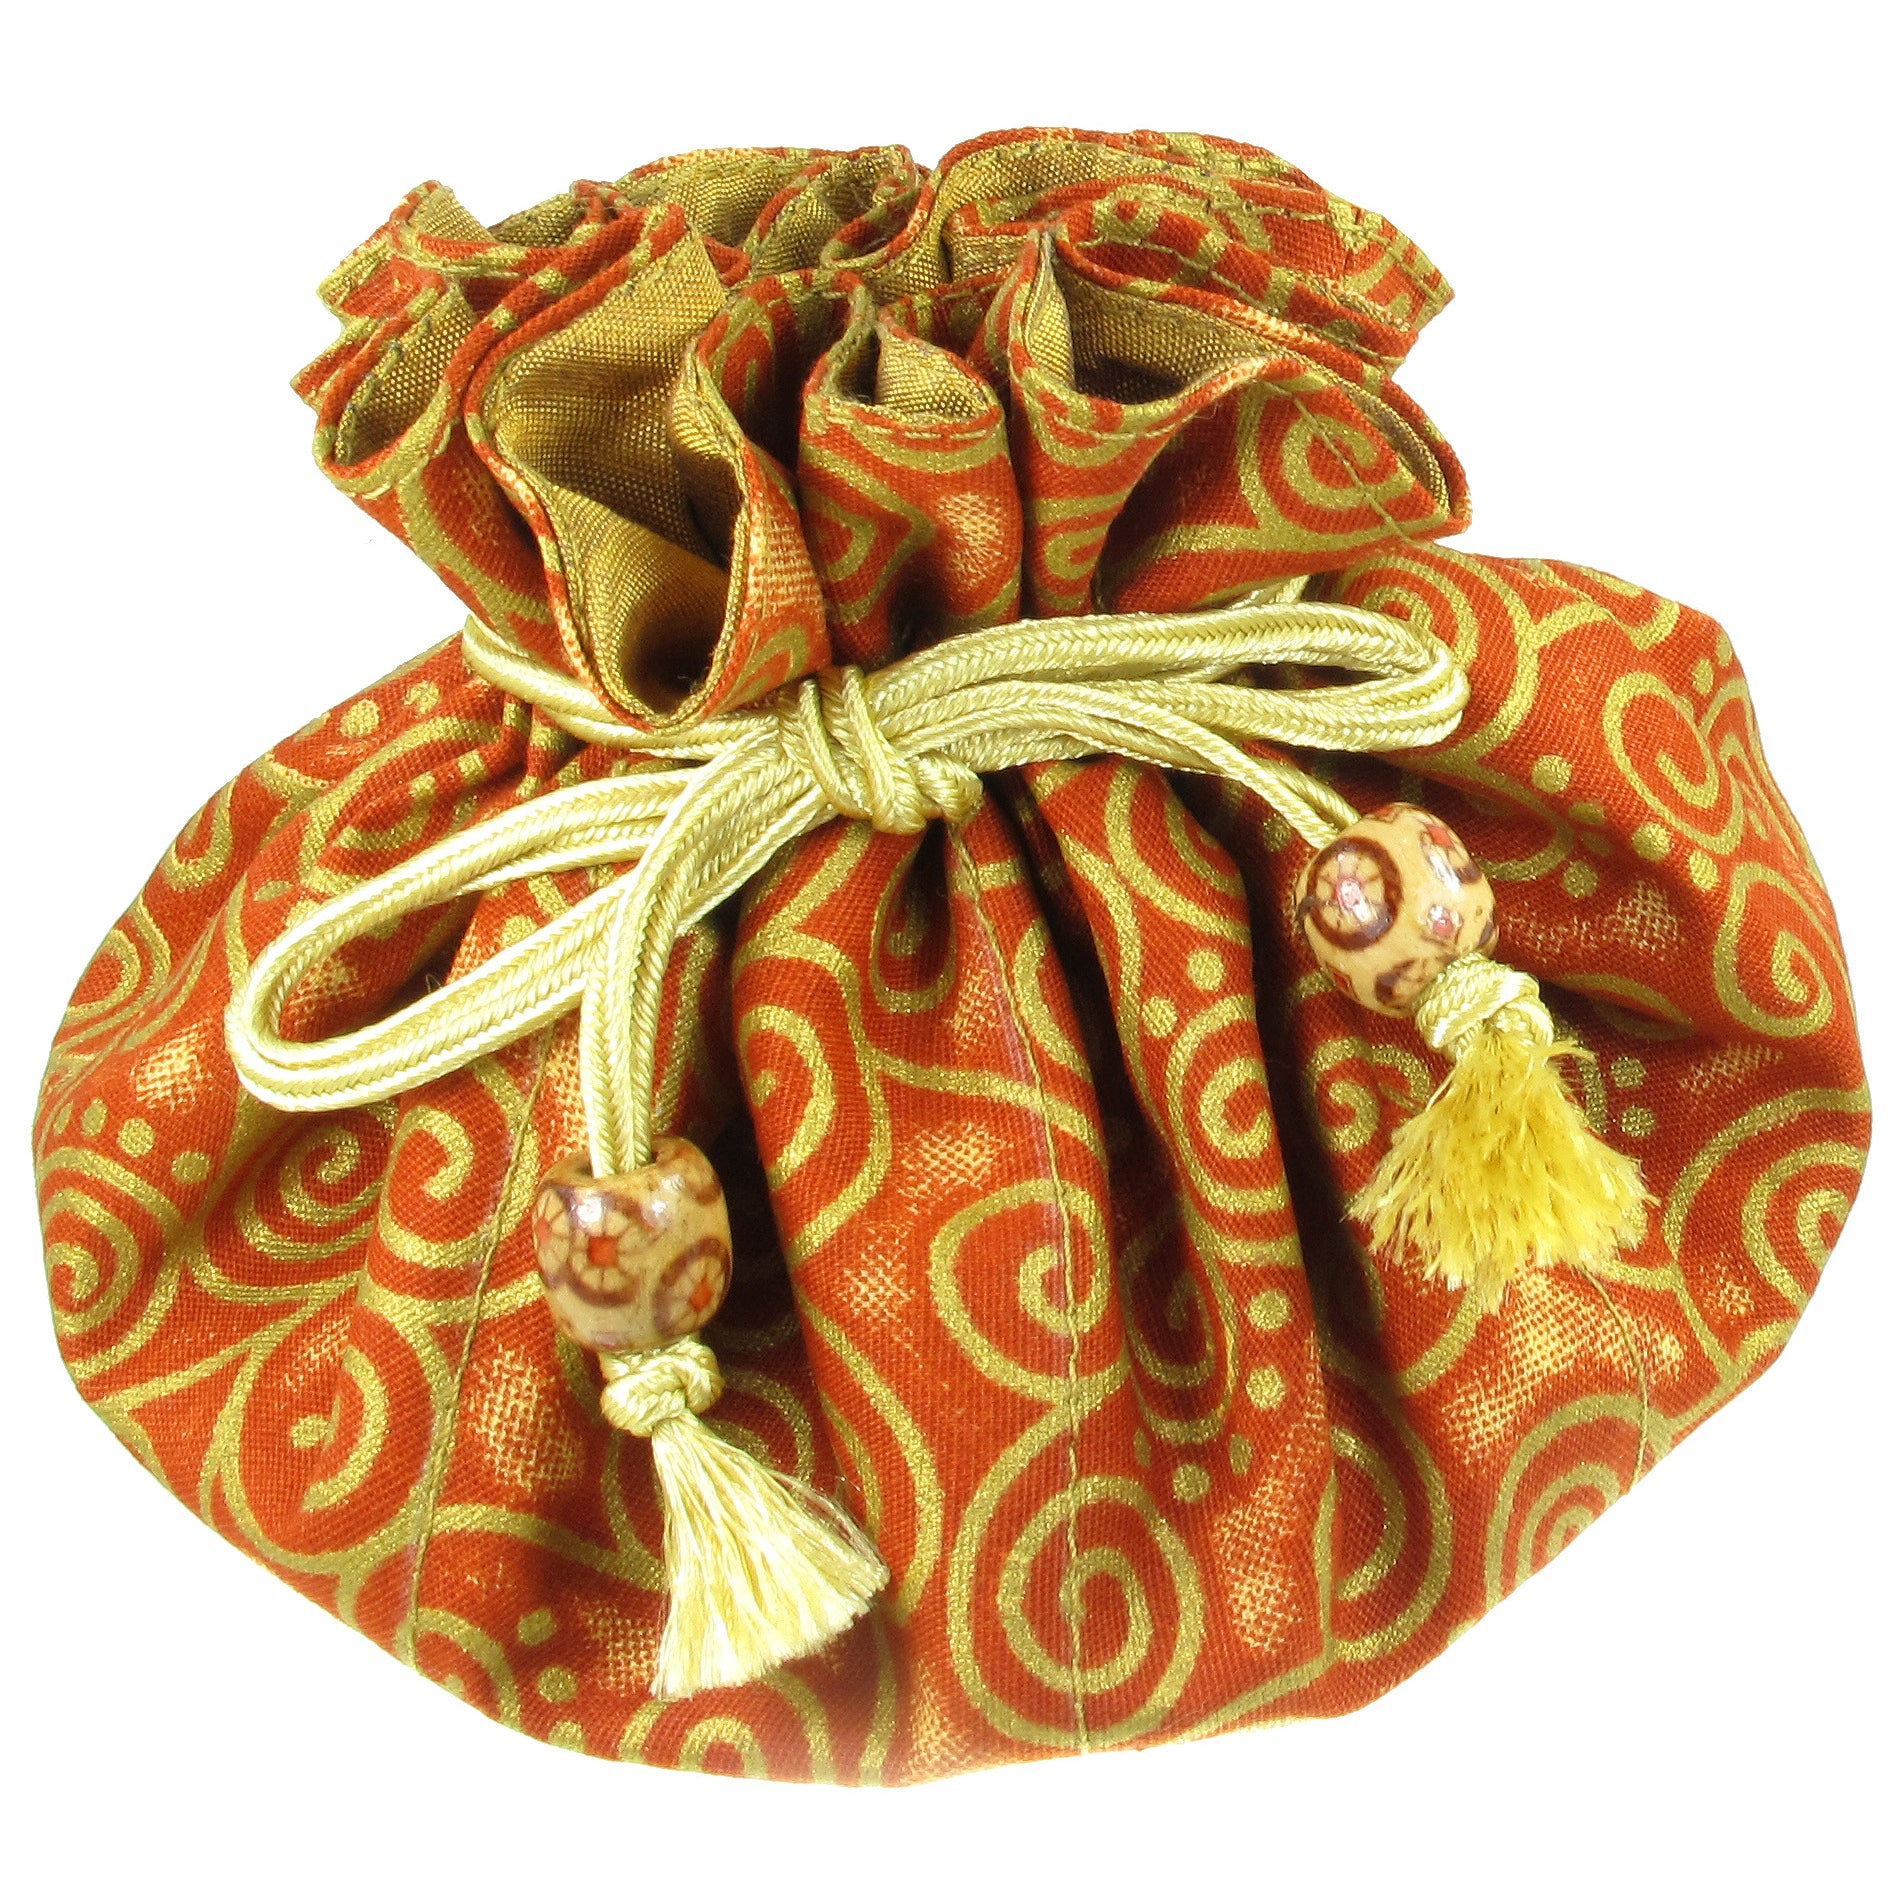 Handmade Drawstring Jewelry Pouch, 8 Pockets, Cotton, Rust with Gold Swirls